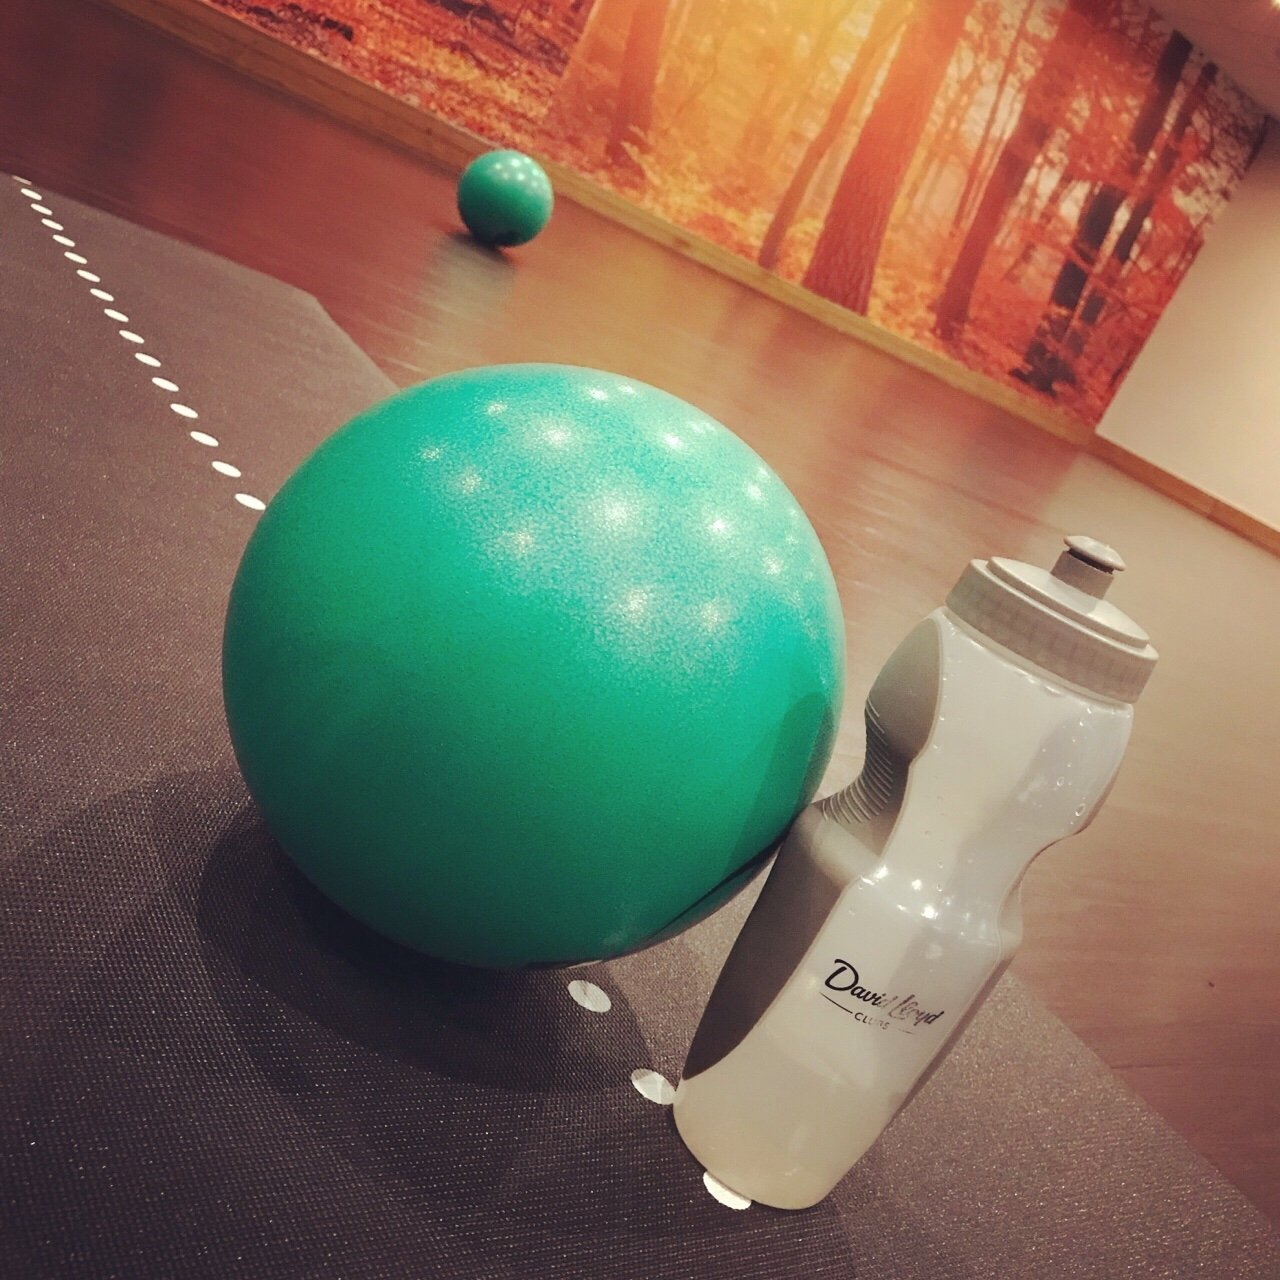 Setting up for Pilates class with ball, matt and water bottle